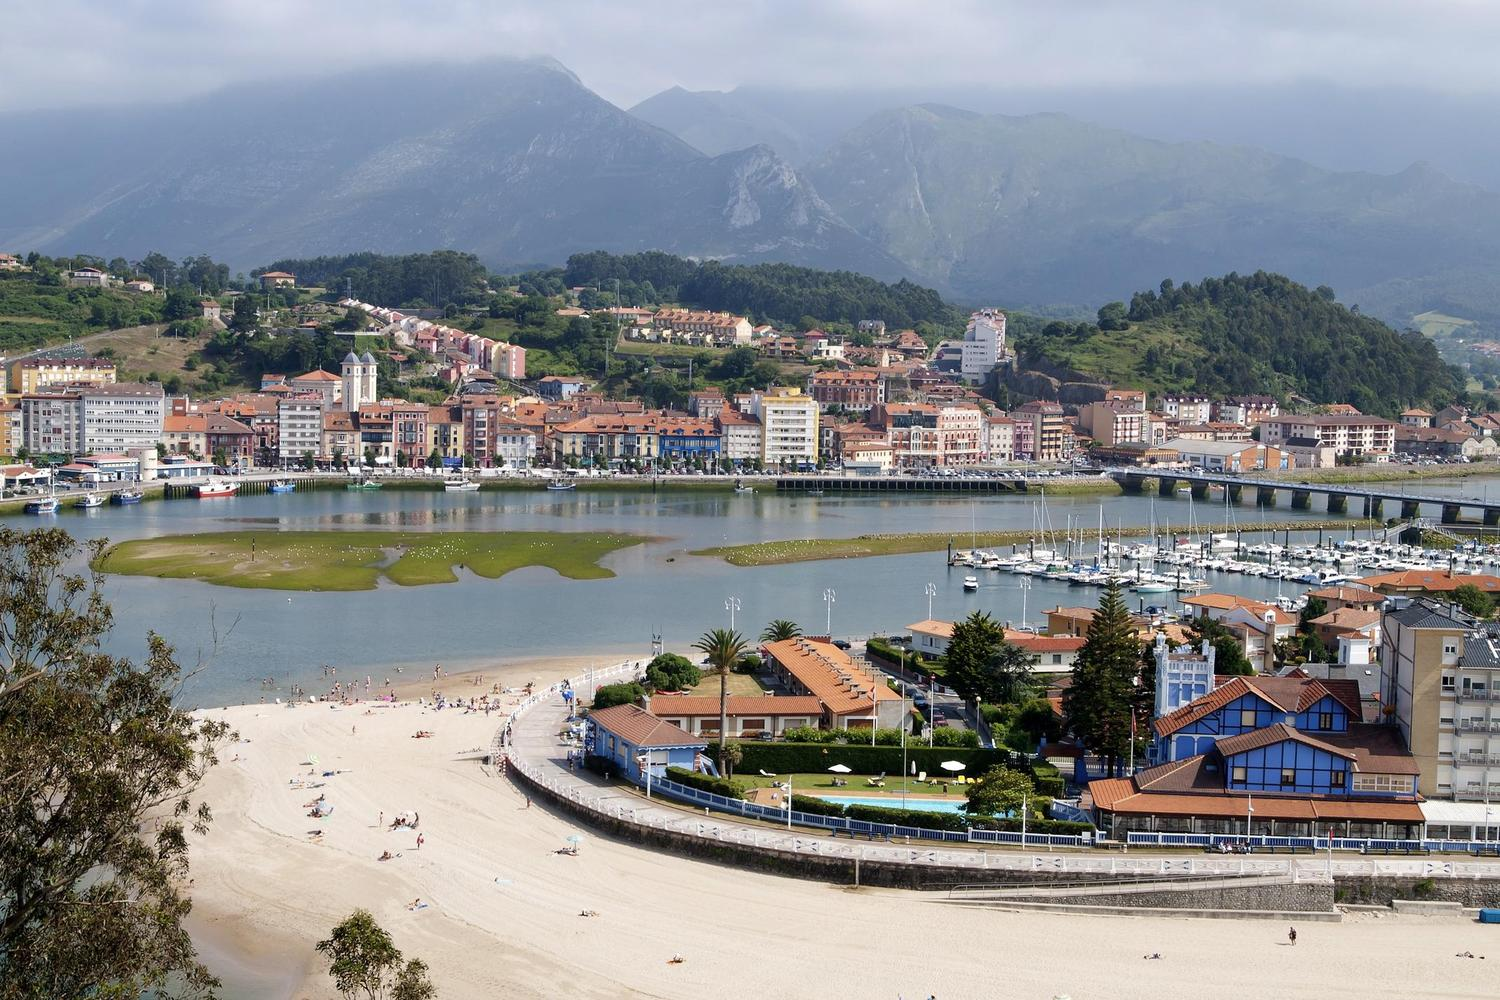 The beach and quayside of Ribadesella, Asturias